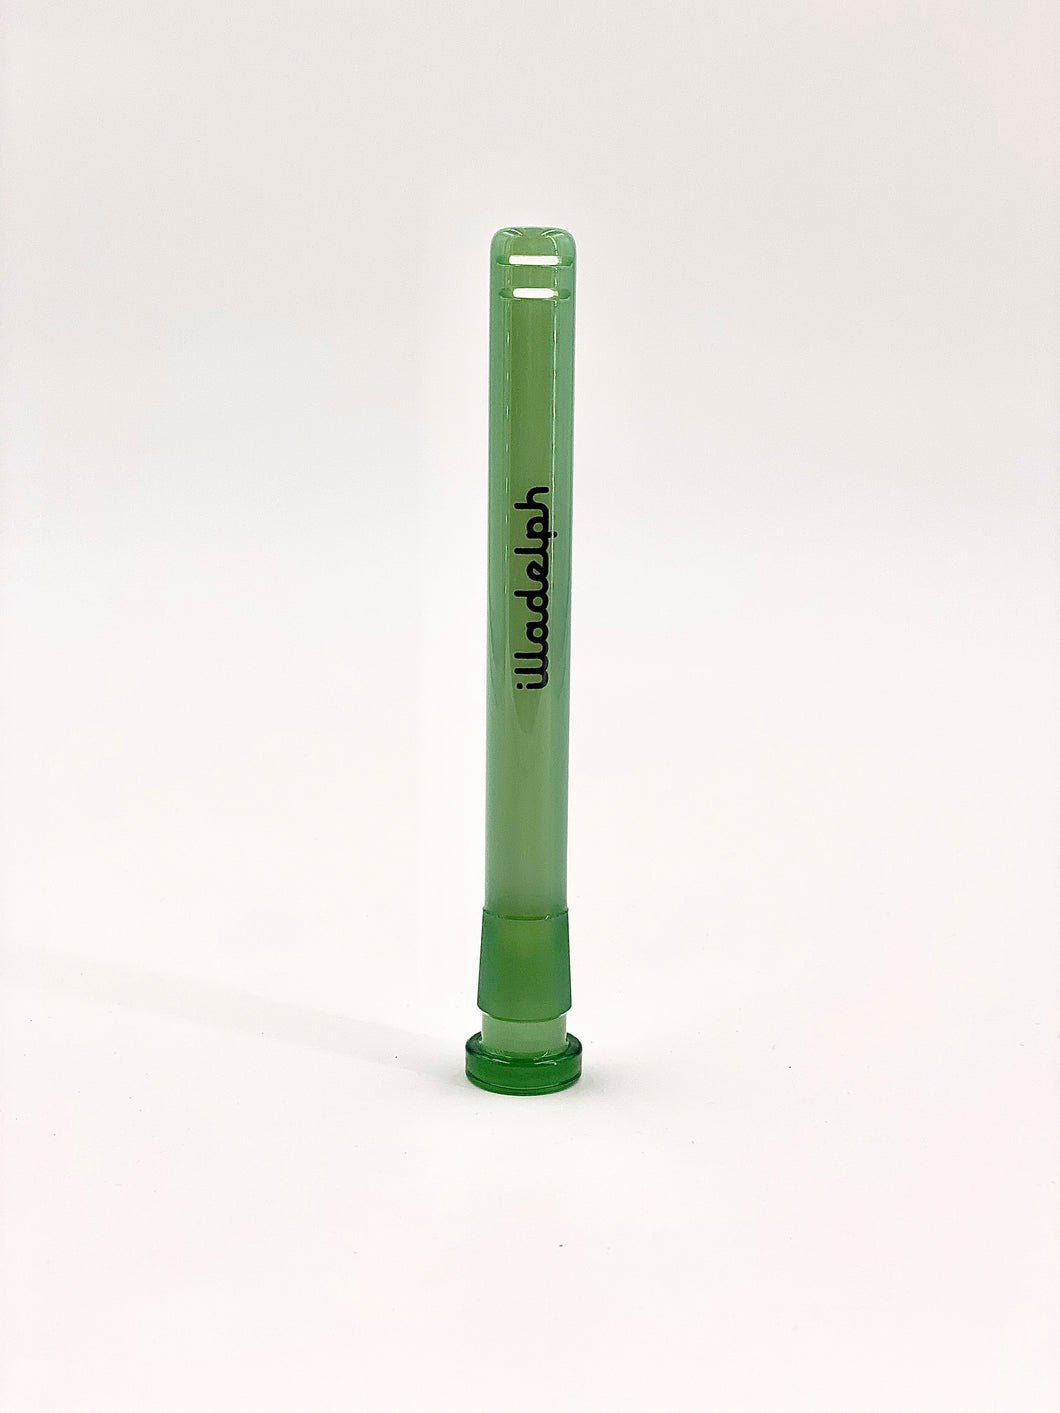 Illadelph - OG Downstem - Jade Green